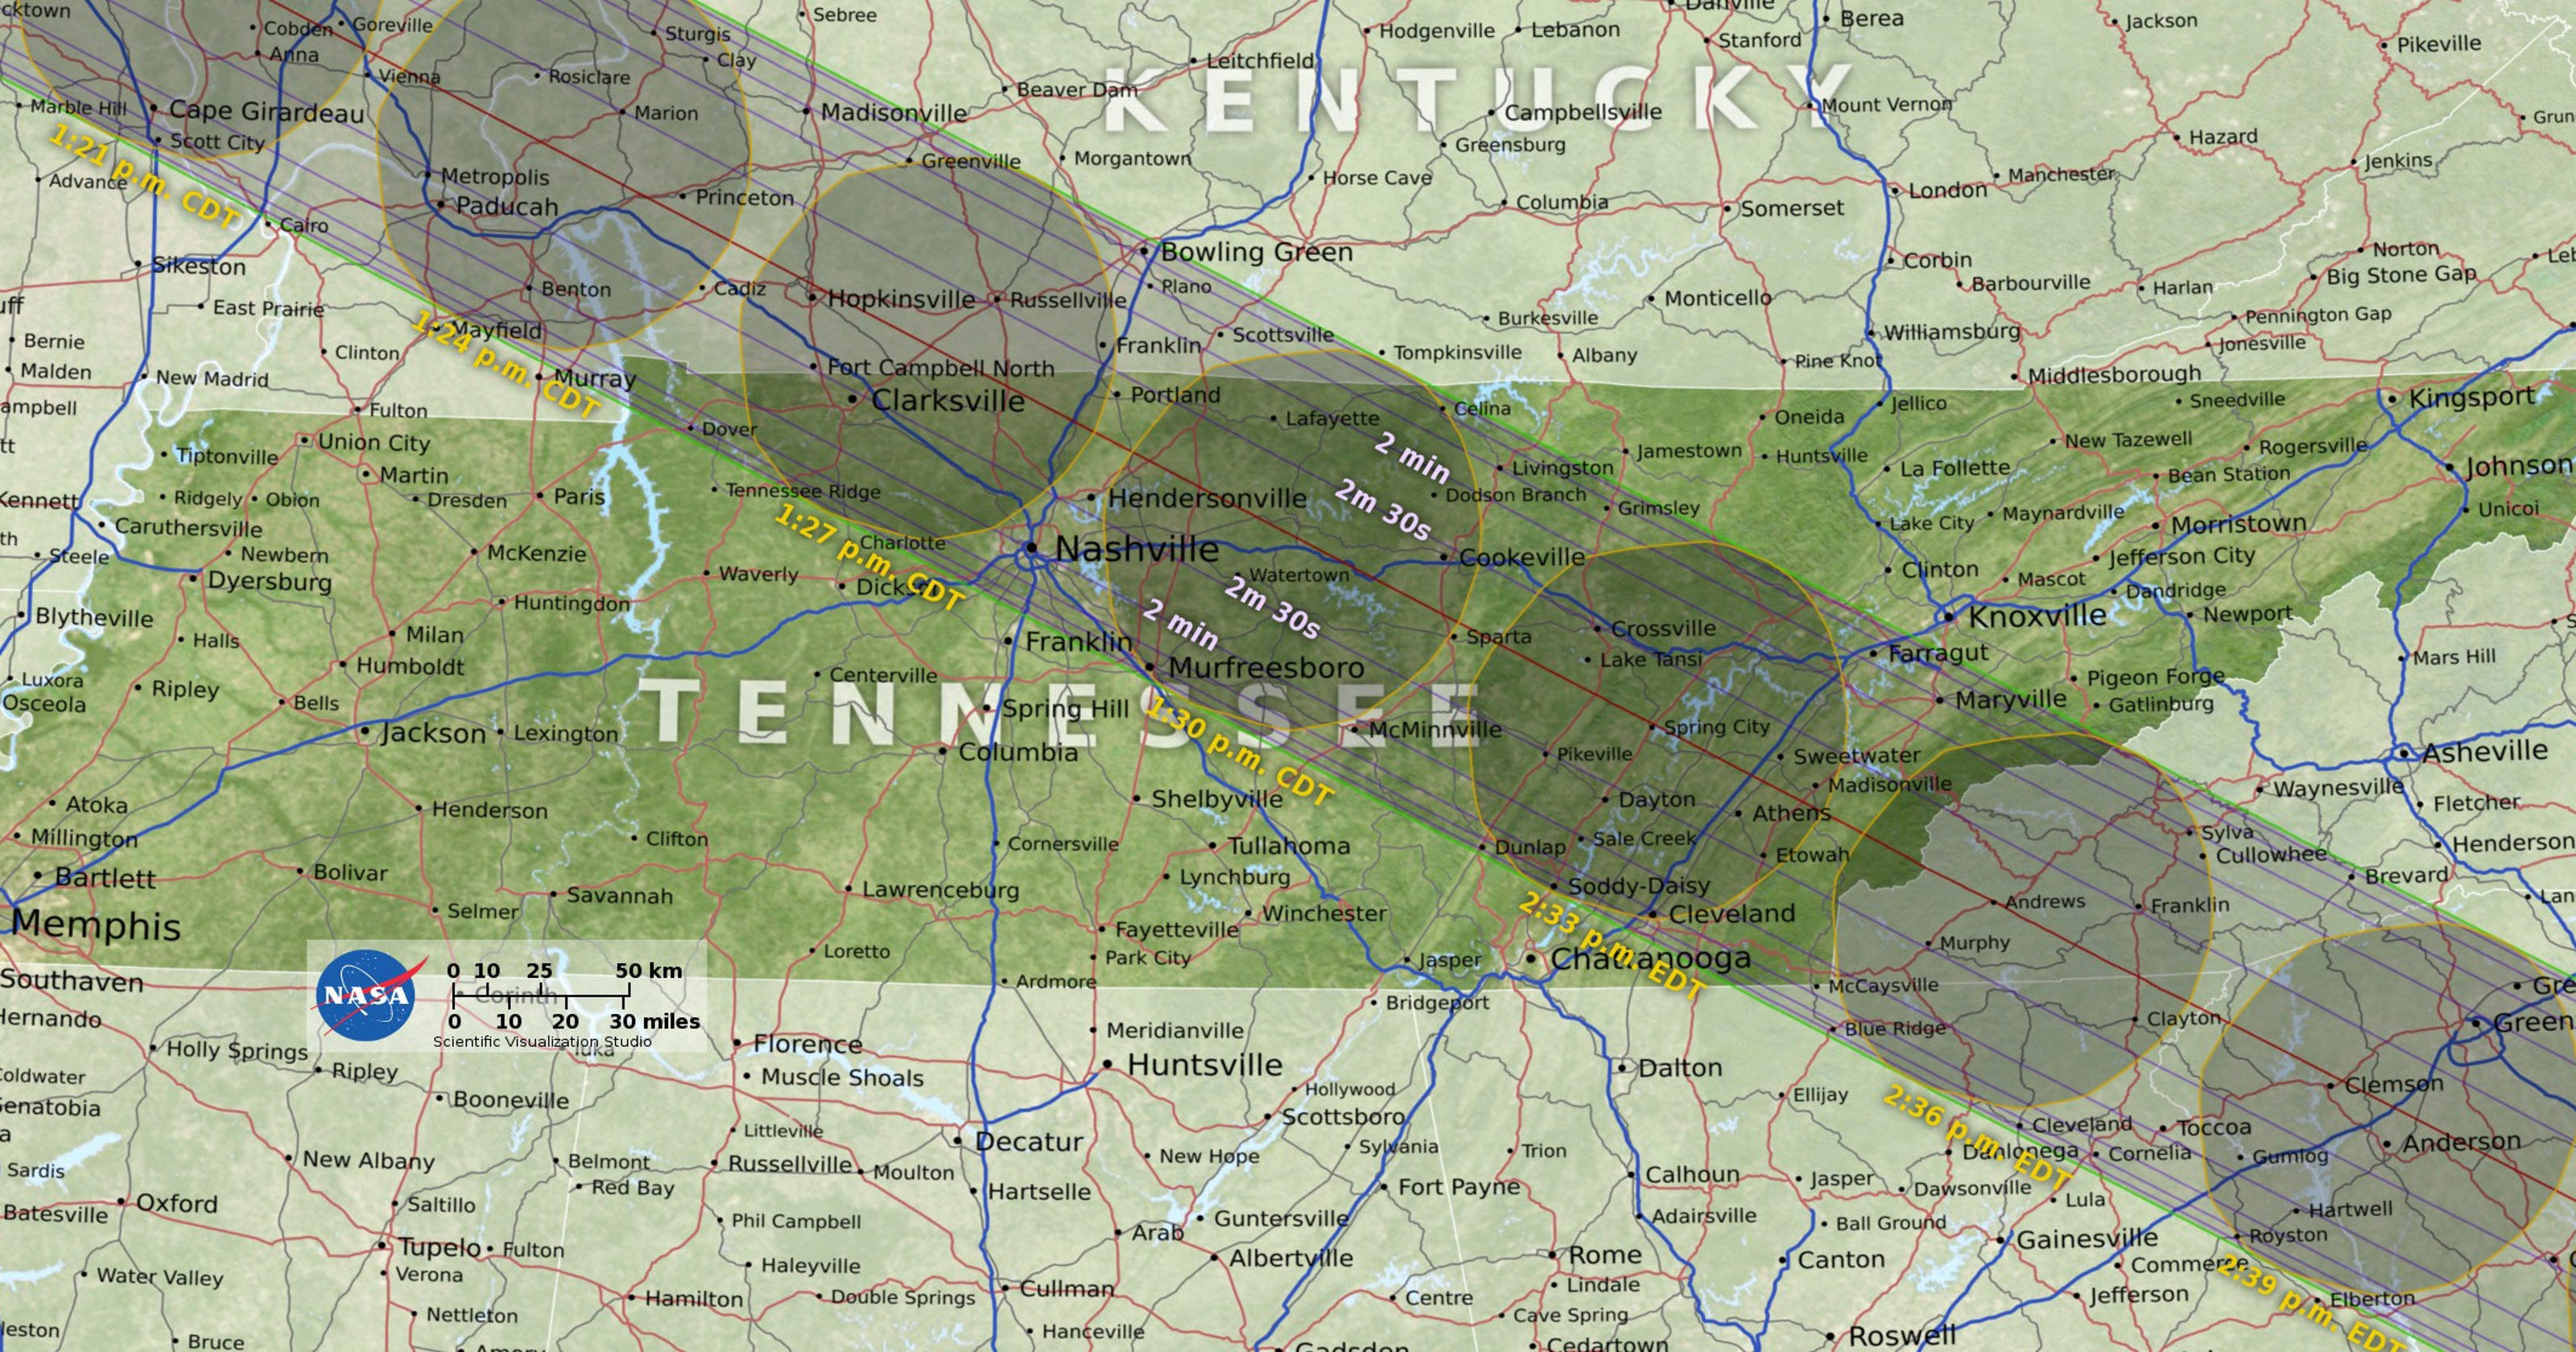 Solar Eclipse 2017 Map: The path of totality through Tennessee ...